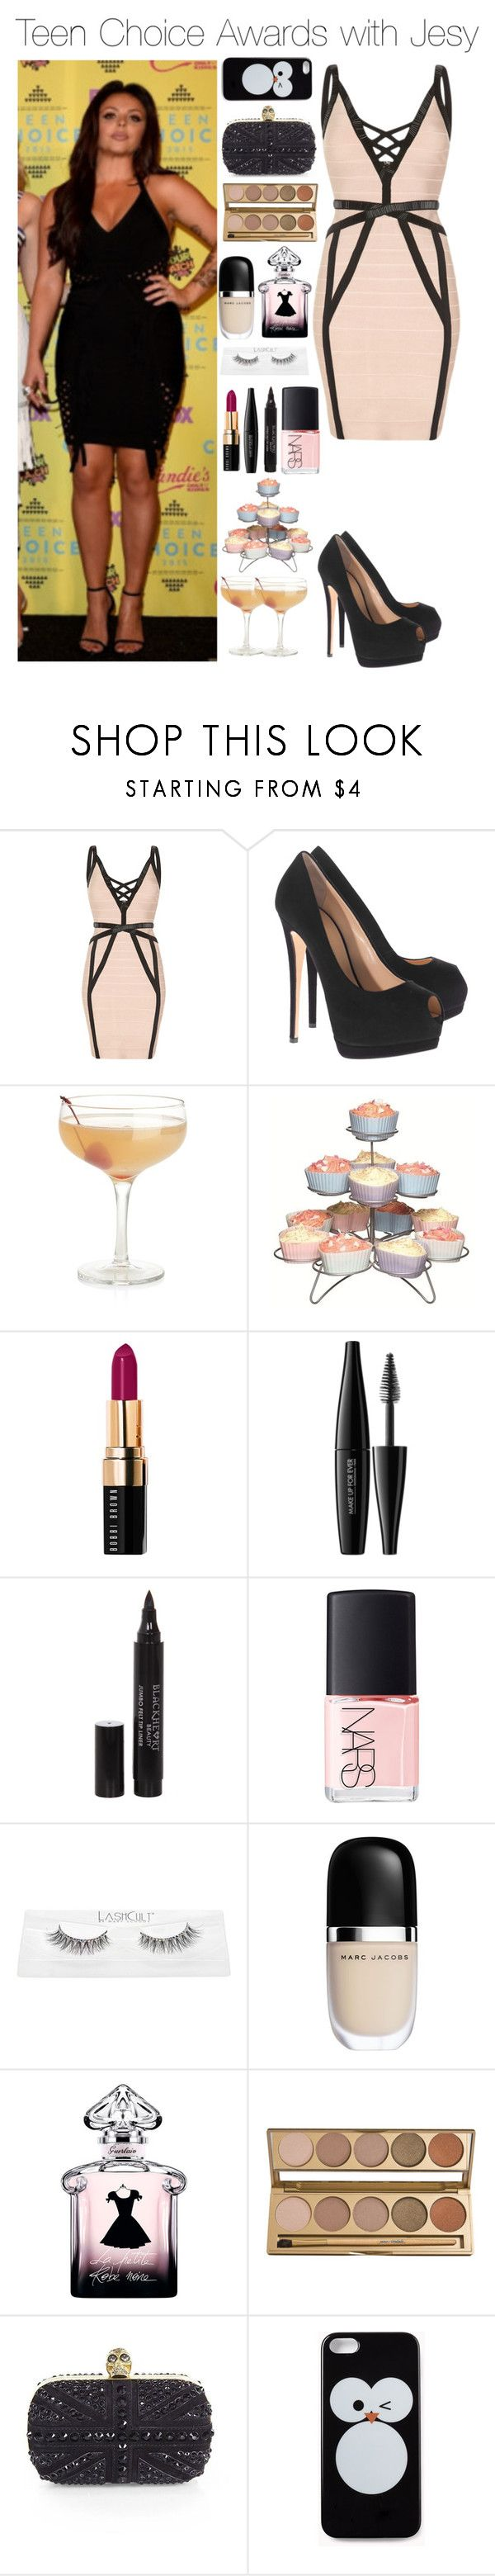 """""""Teen Choice Awards with Jesy"""" by xhoneymoonavenuex ❤ liked on Polyvore featuring Giuseppe Zanotti, Crate and Barrel, Sweetly Does it, Bobbi Brown Cosmetics, MAKE UP FOR EVER, Hot Topic, NARS Cosmetics, Guerlain, Jane Iredale and Alexander McQueen"""